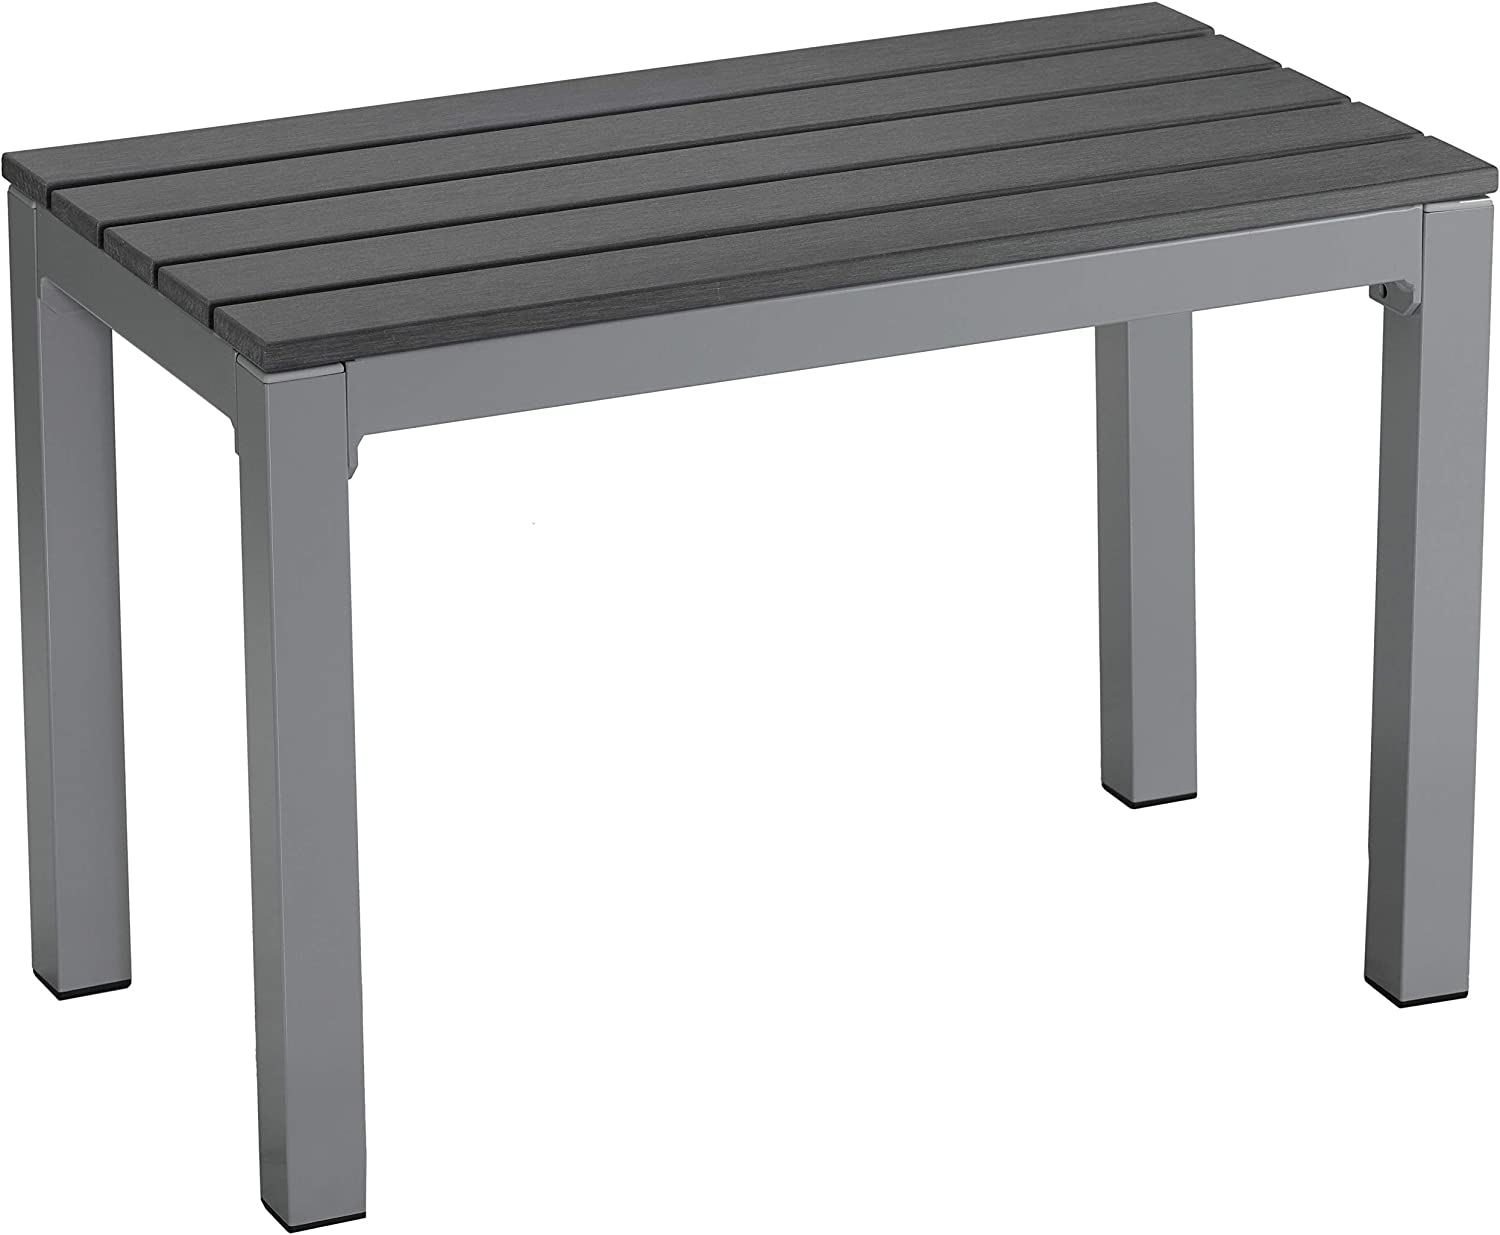 Cortesi Home CH-DB700114 Jaxon Aluminum Outdoor Bench in Poly Resin, 26 W x 14 L x 17 H, Grey